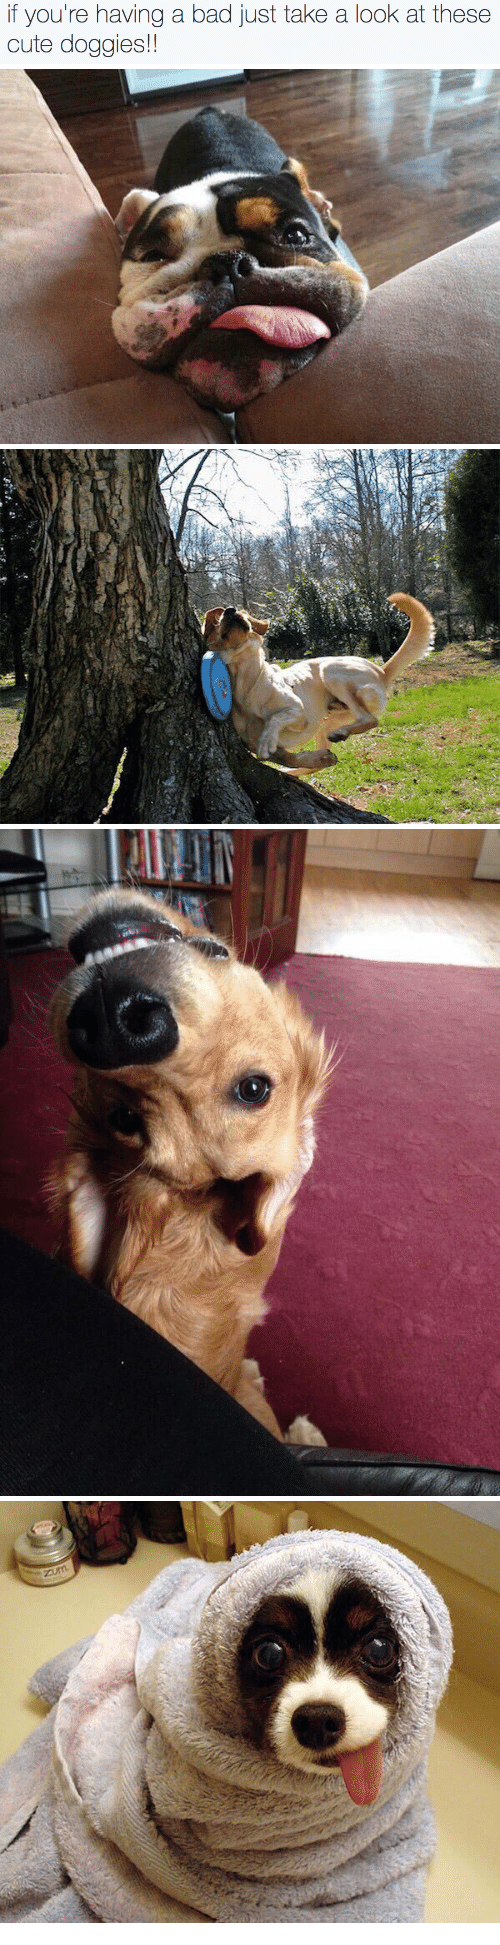 Bad, Cute, and Look: if you're having a bad just take a look at these  cute doggies!!